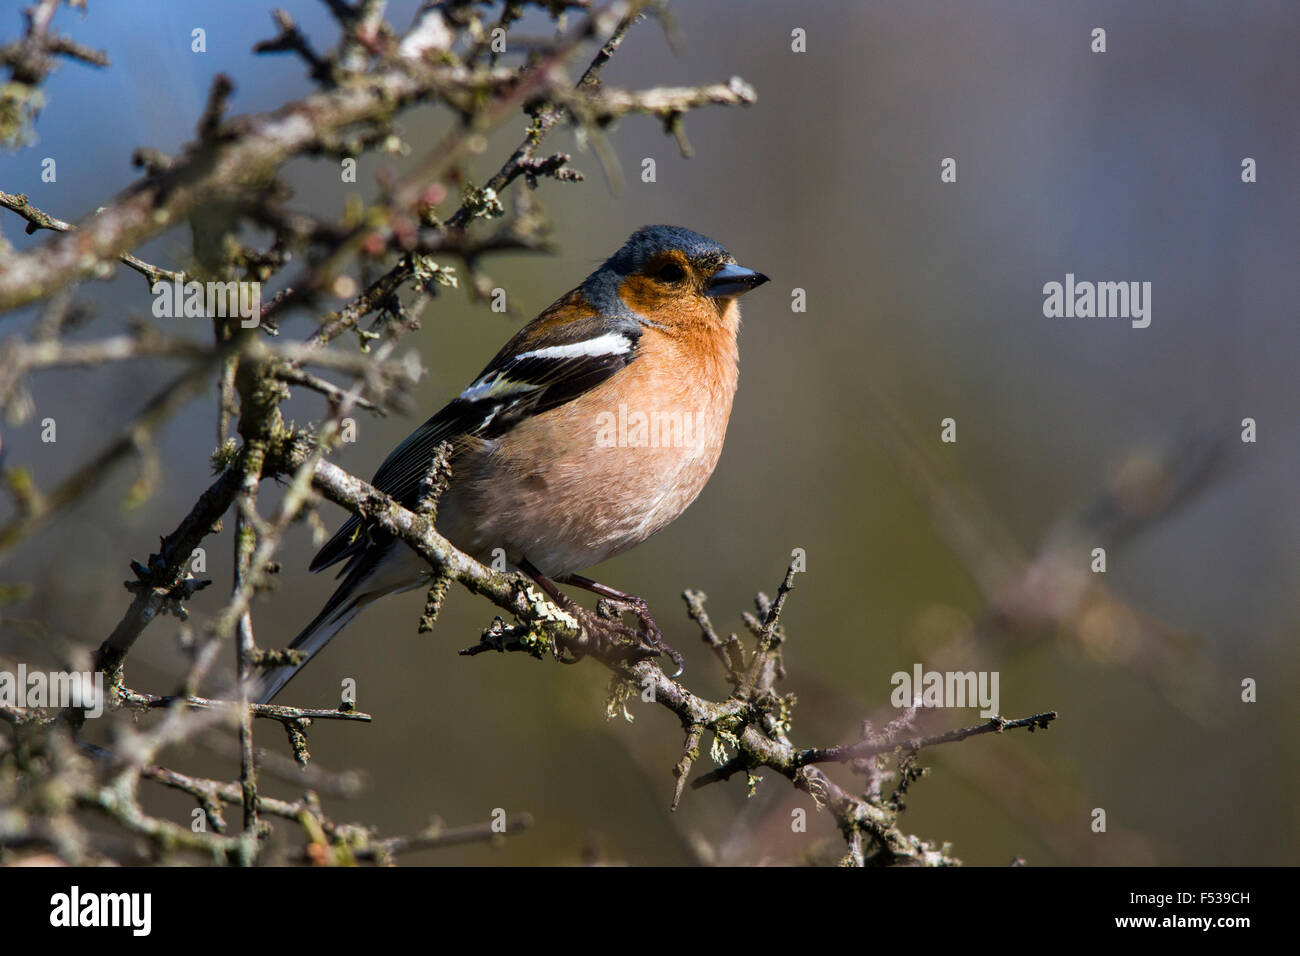 Chaffinch sitting on a branch in the sun - Stock Image